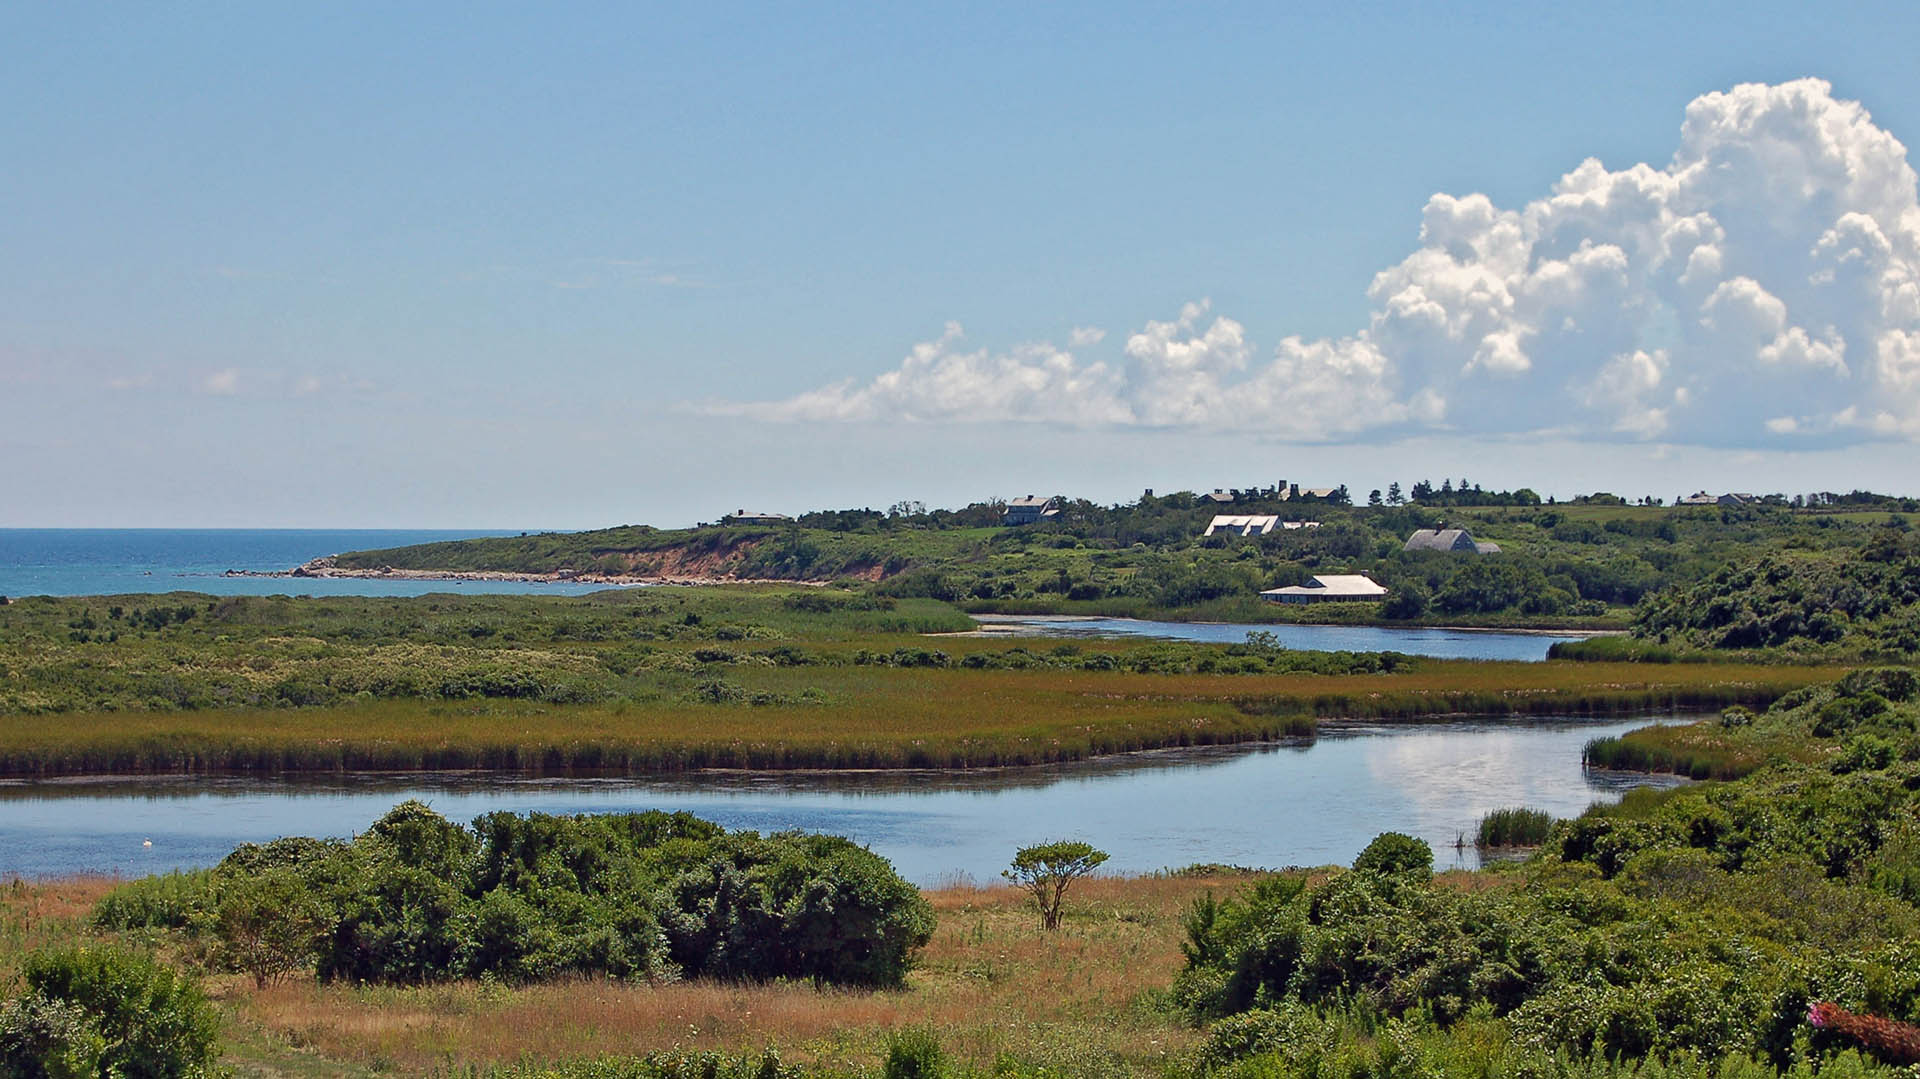 Squibnocket Pond as seen from Blacksmith Valley, Chilmark, Martha's Vineyard